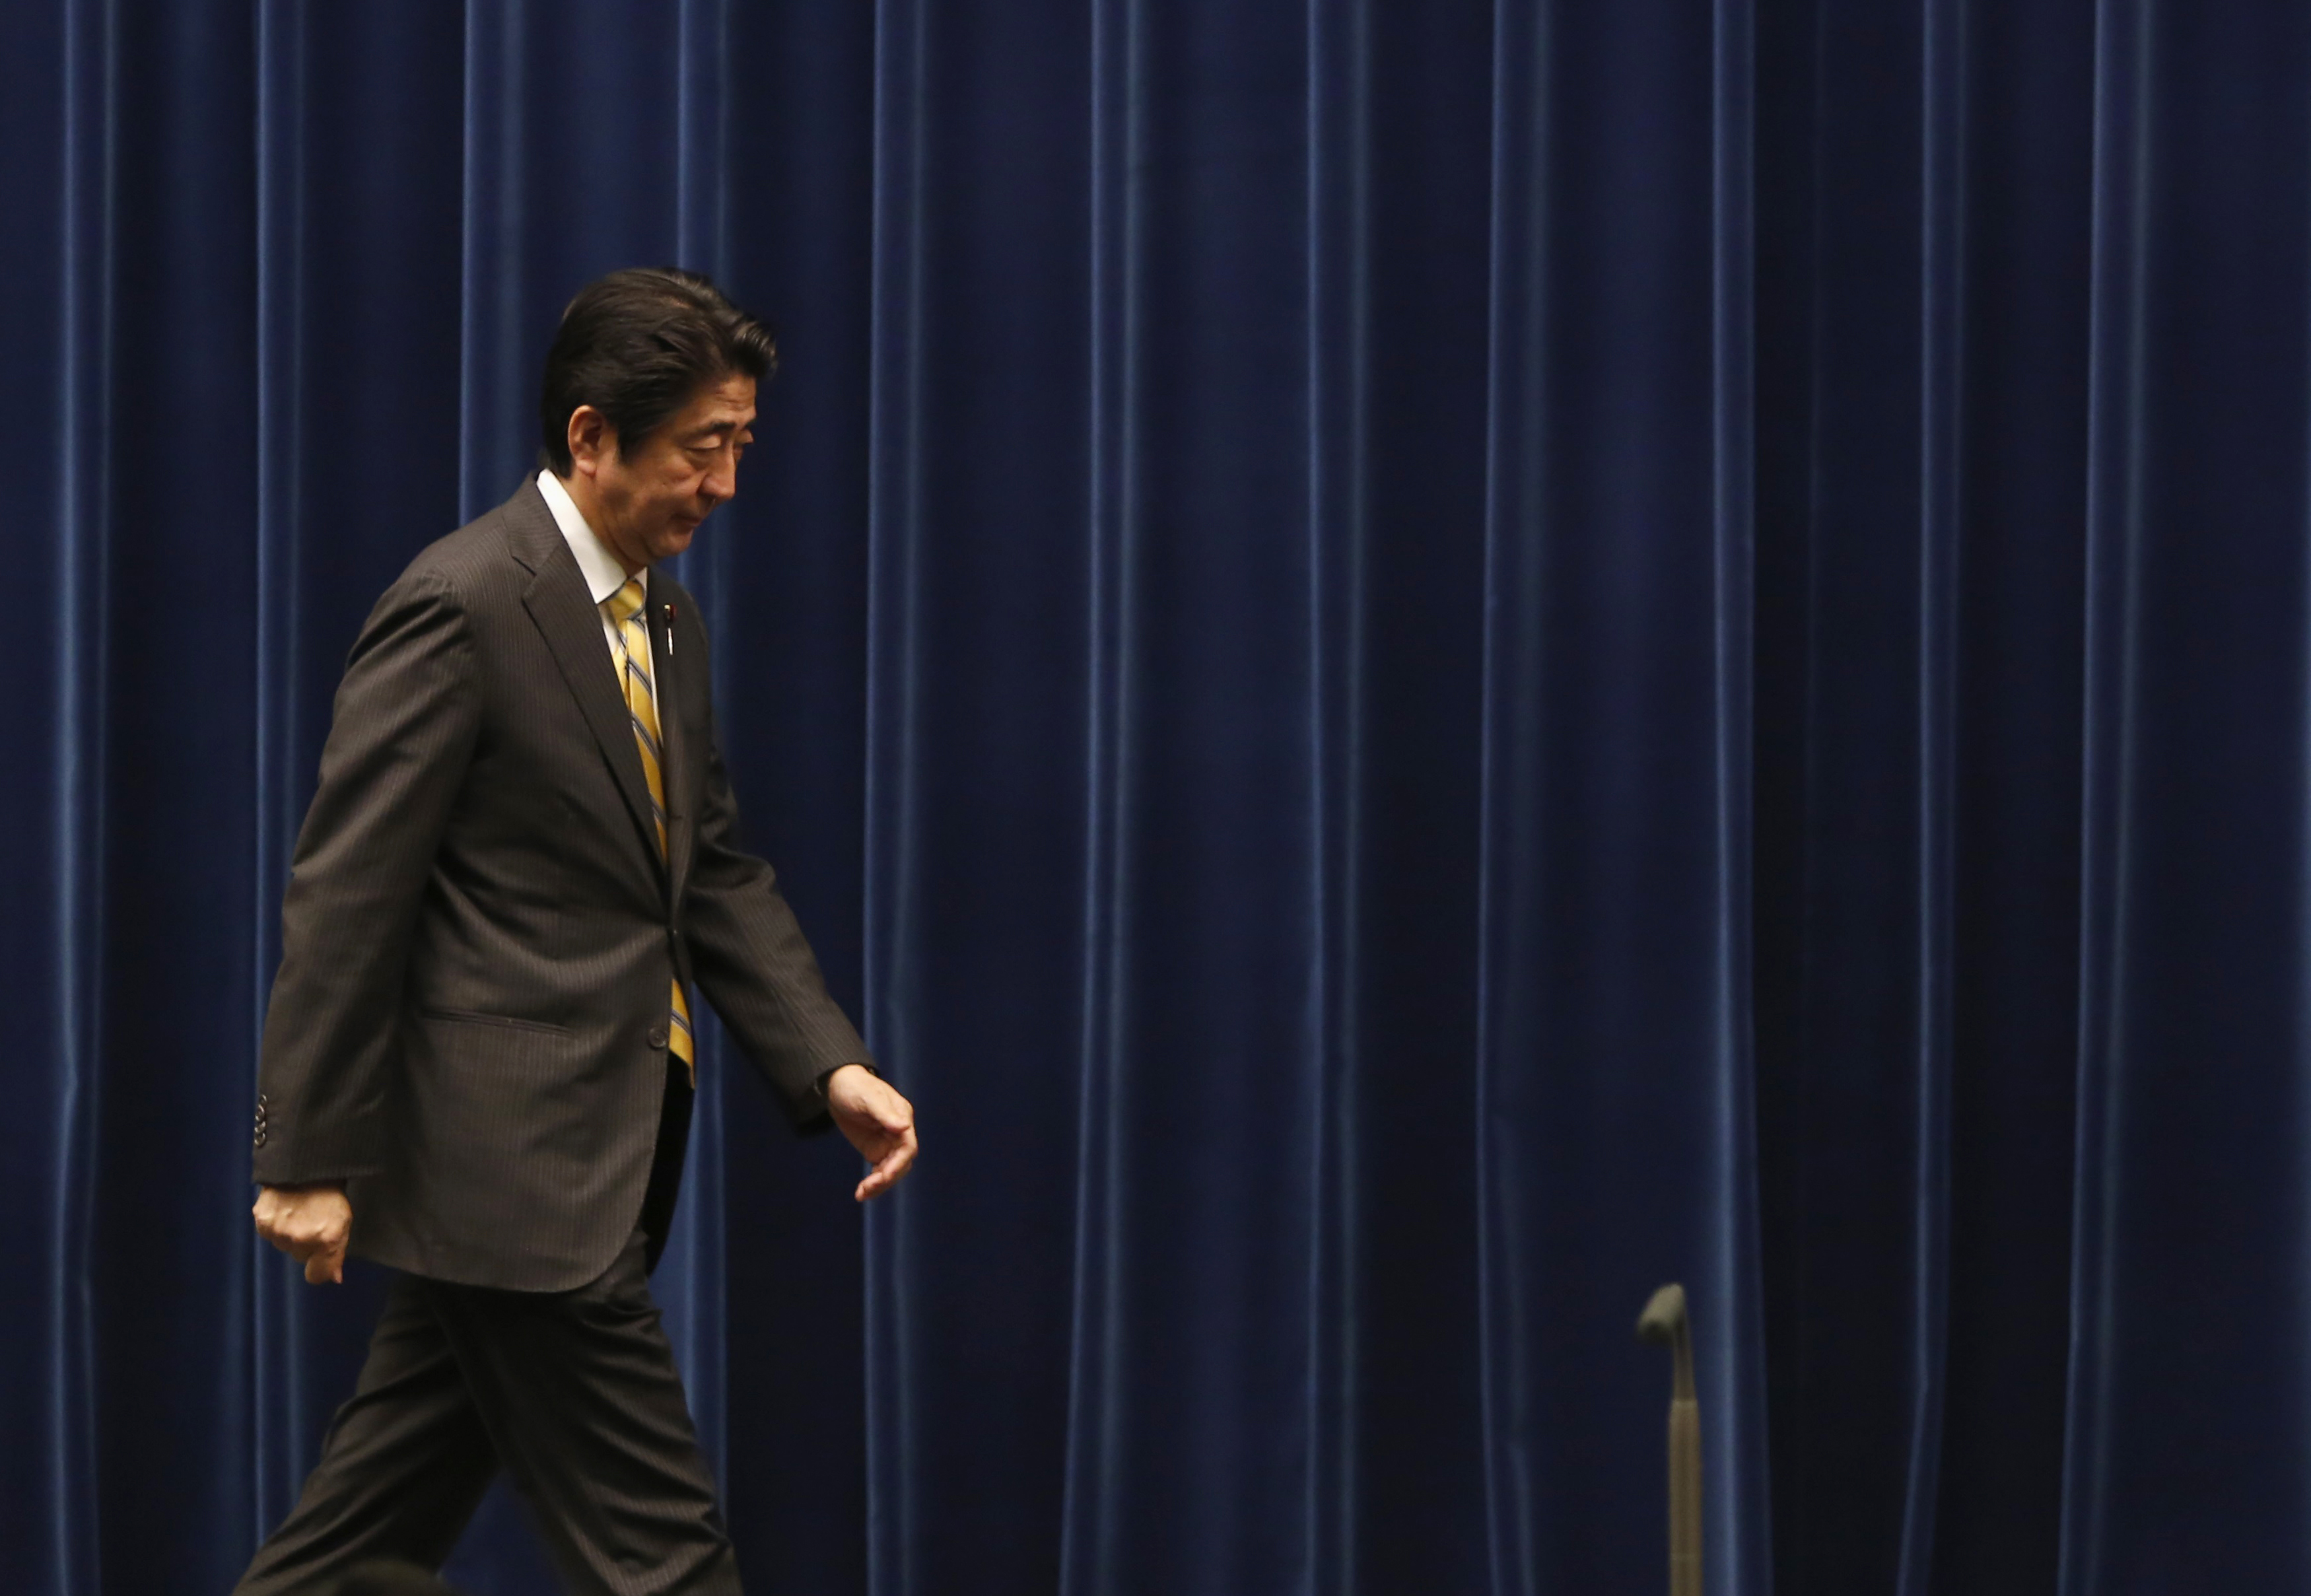 Japan's Prime Minister Shinzo Abe leaves a news conference at his official residence in Tokyo on June 24, 2014.  Abe has unveiled a package of measures aimed to boost Japan's long-term economic growth, from phased-in corporate tax cuts to a bigger role for women and foreign workers